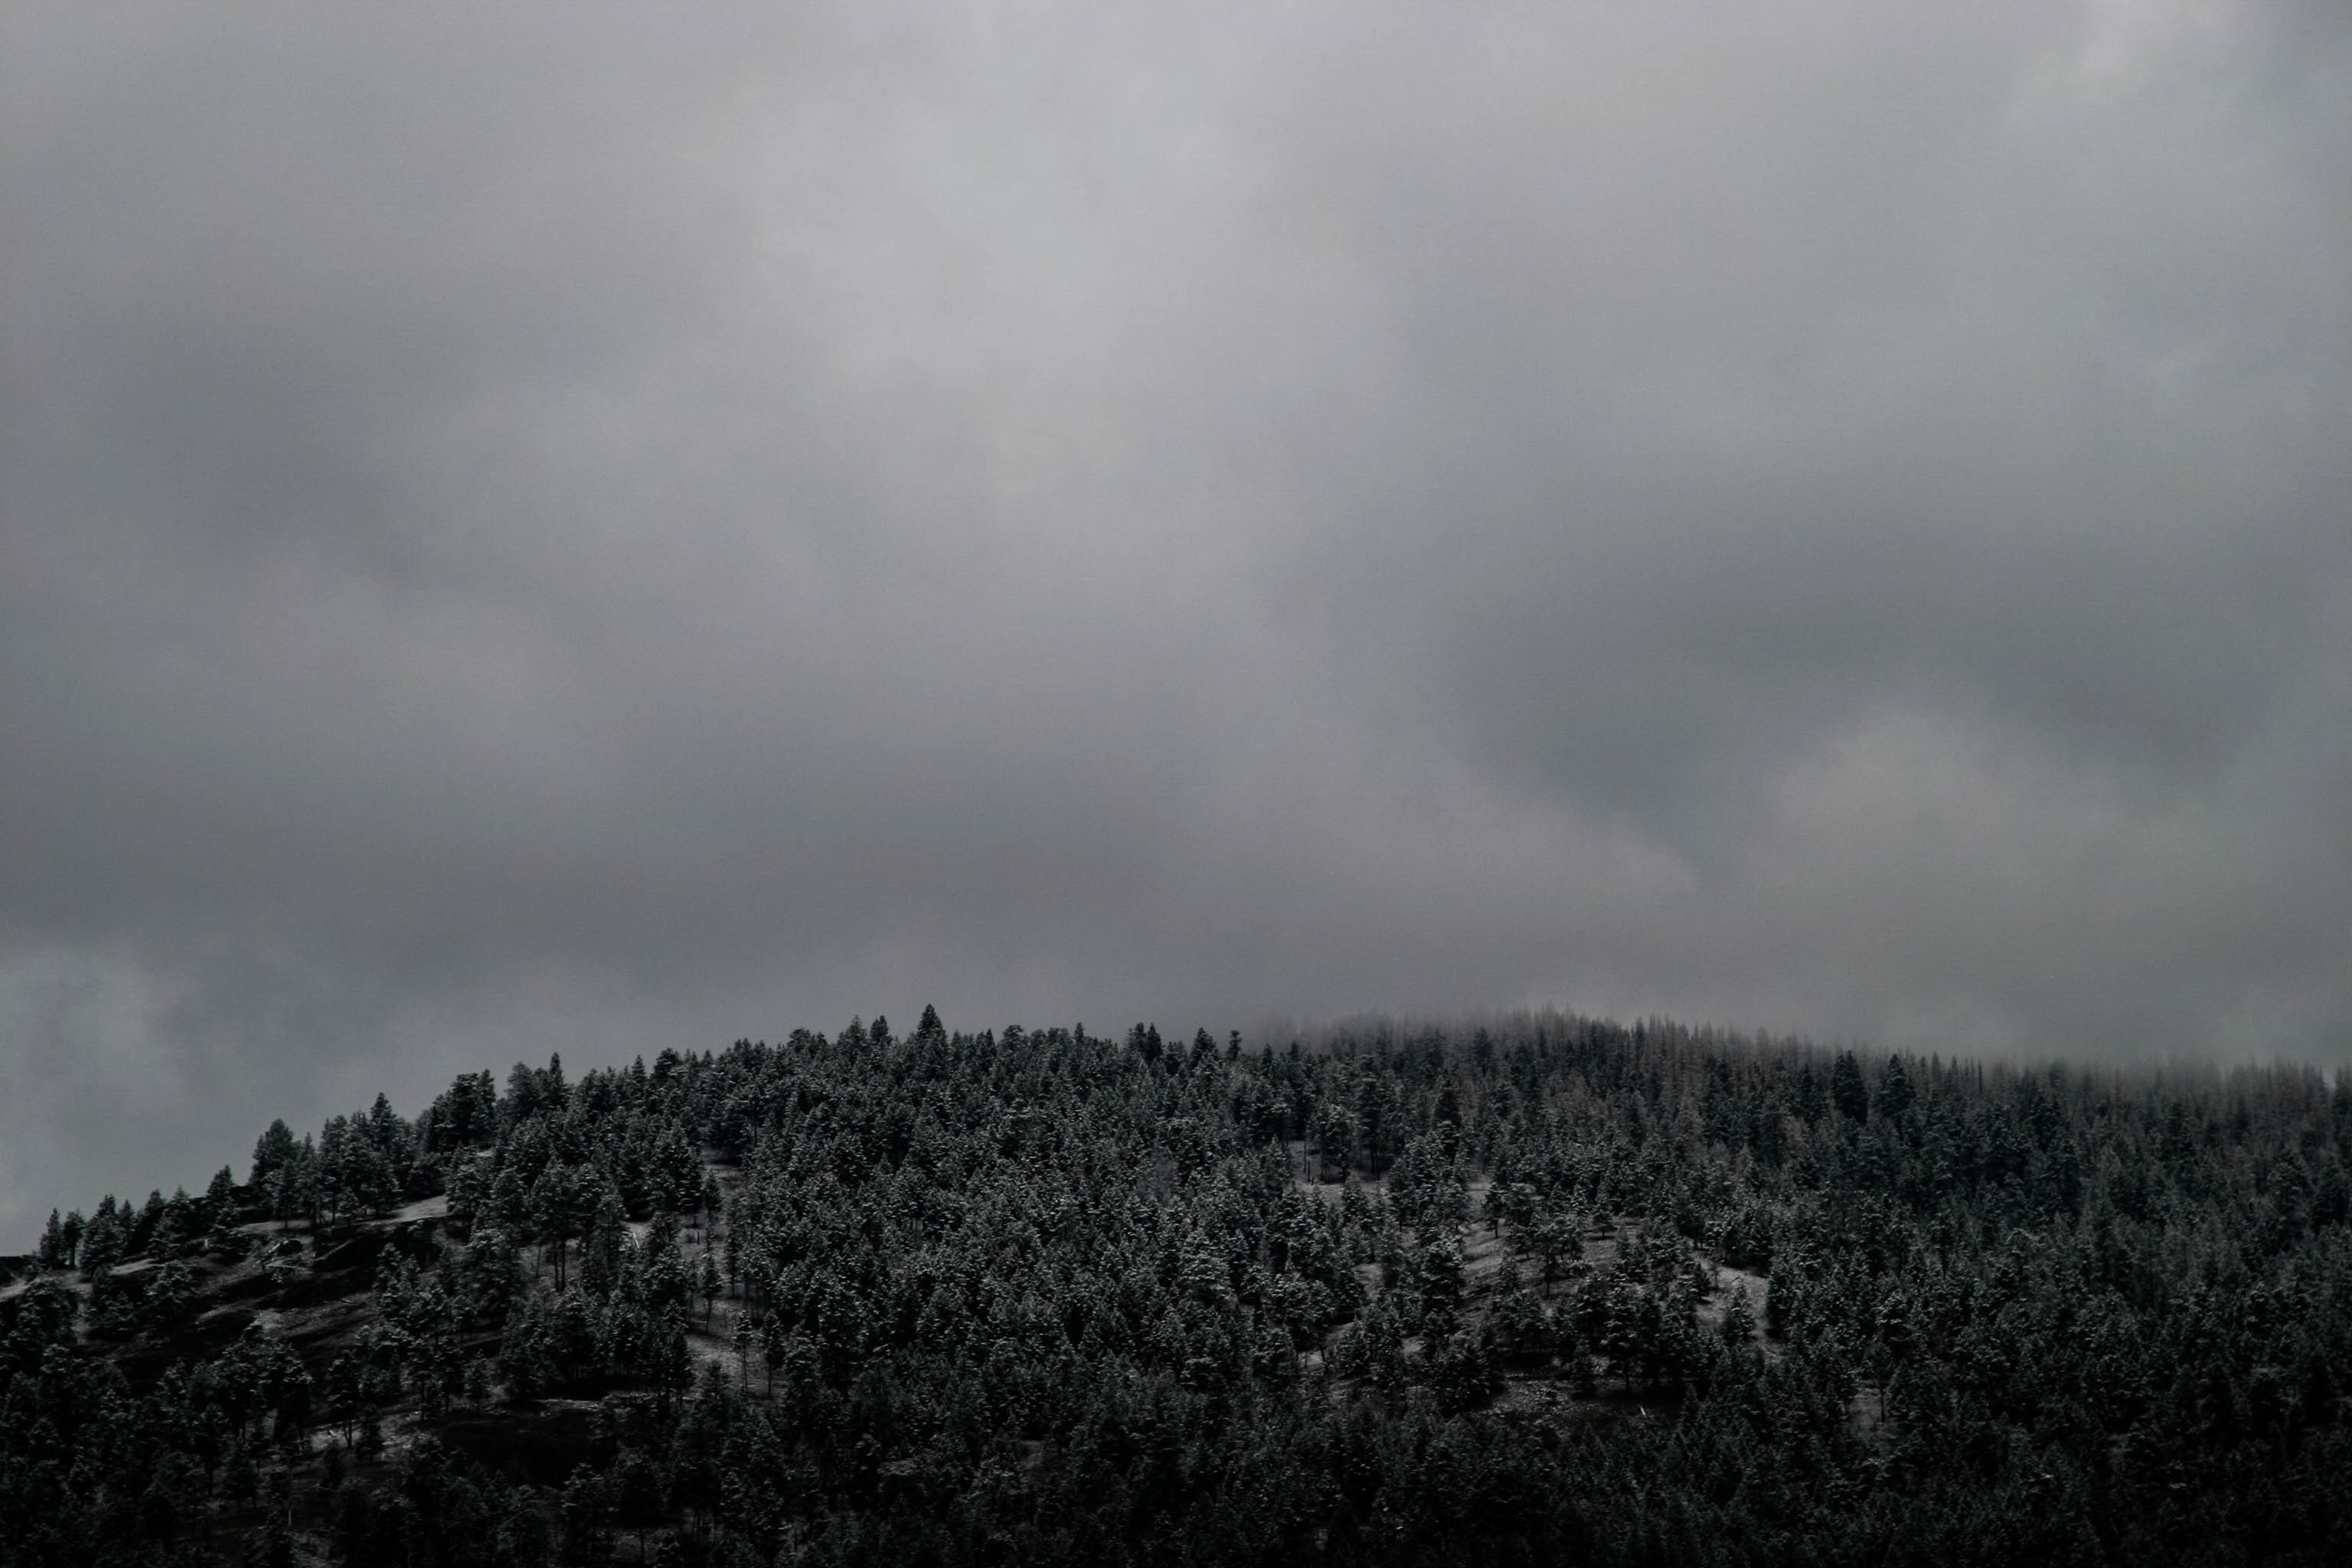 A desaturated shot of a forest on a hill under heavy clouds